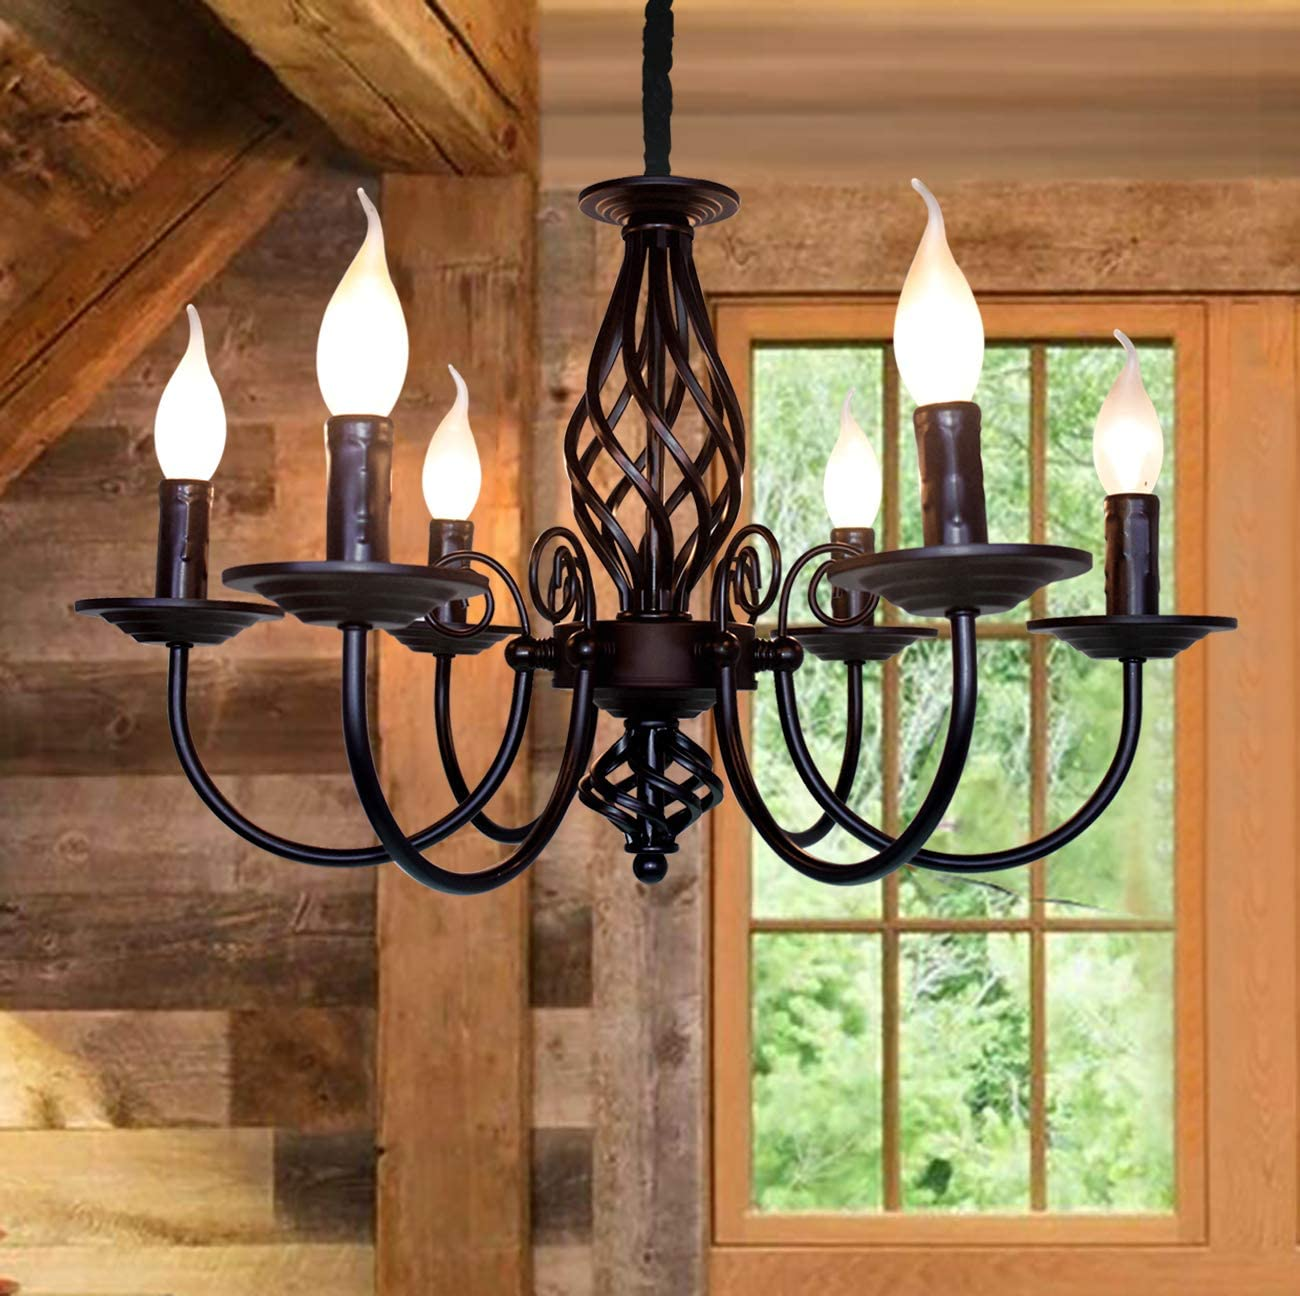 Amazon Com Jaycomey French Country Chandelier Vintage Candle Chandelier 6 Lights Farmhouse Pendant Light Fixture For Kitchen Island Dining Room Living Room Home Improvement